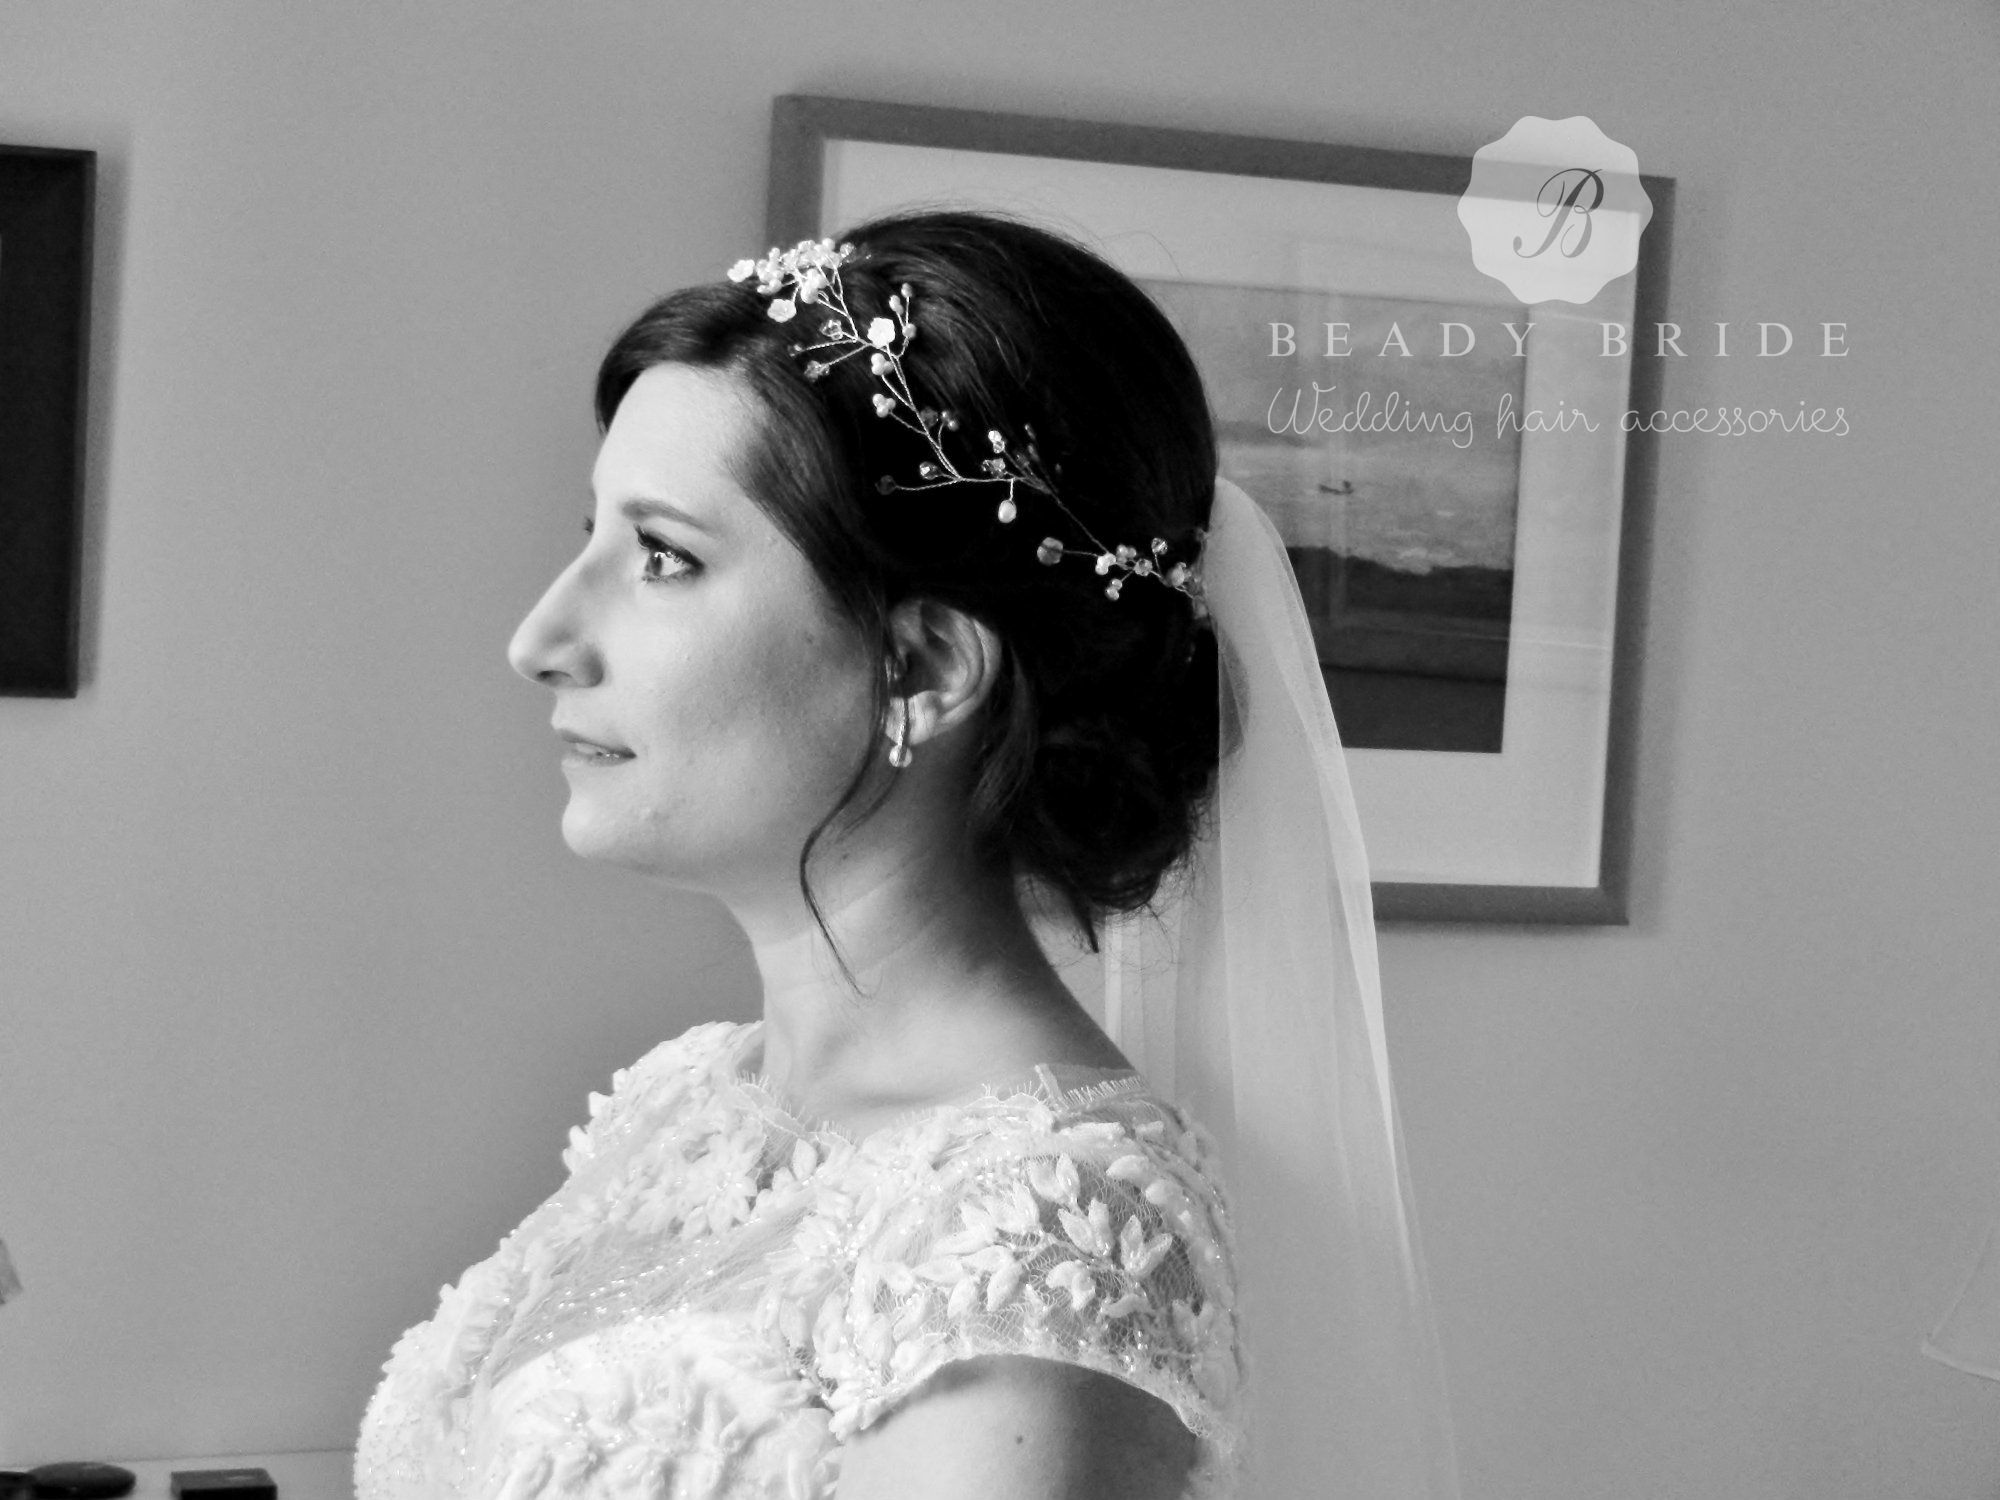 Pretty bridal and wedding hair vne accessories-Gloucestershire-UK